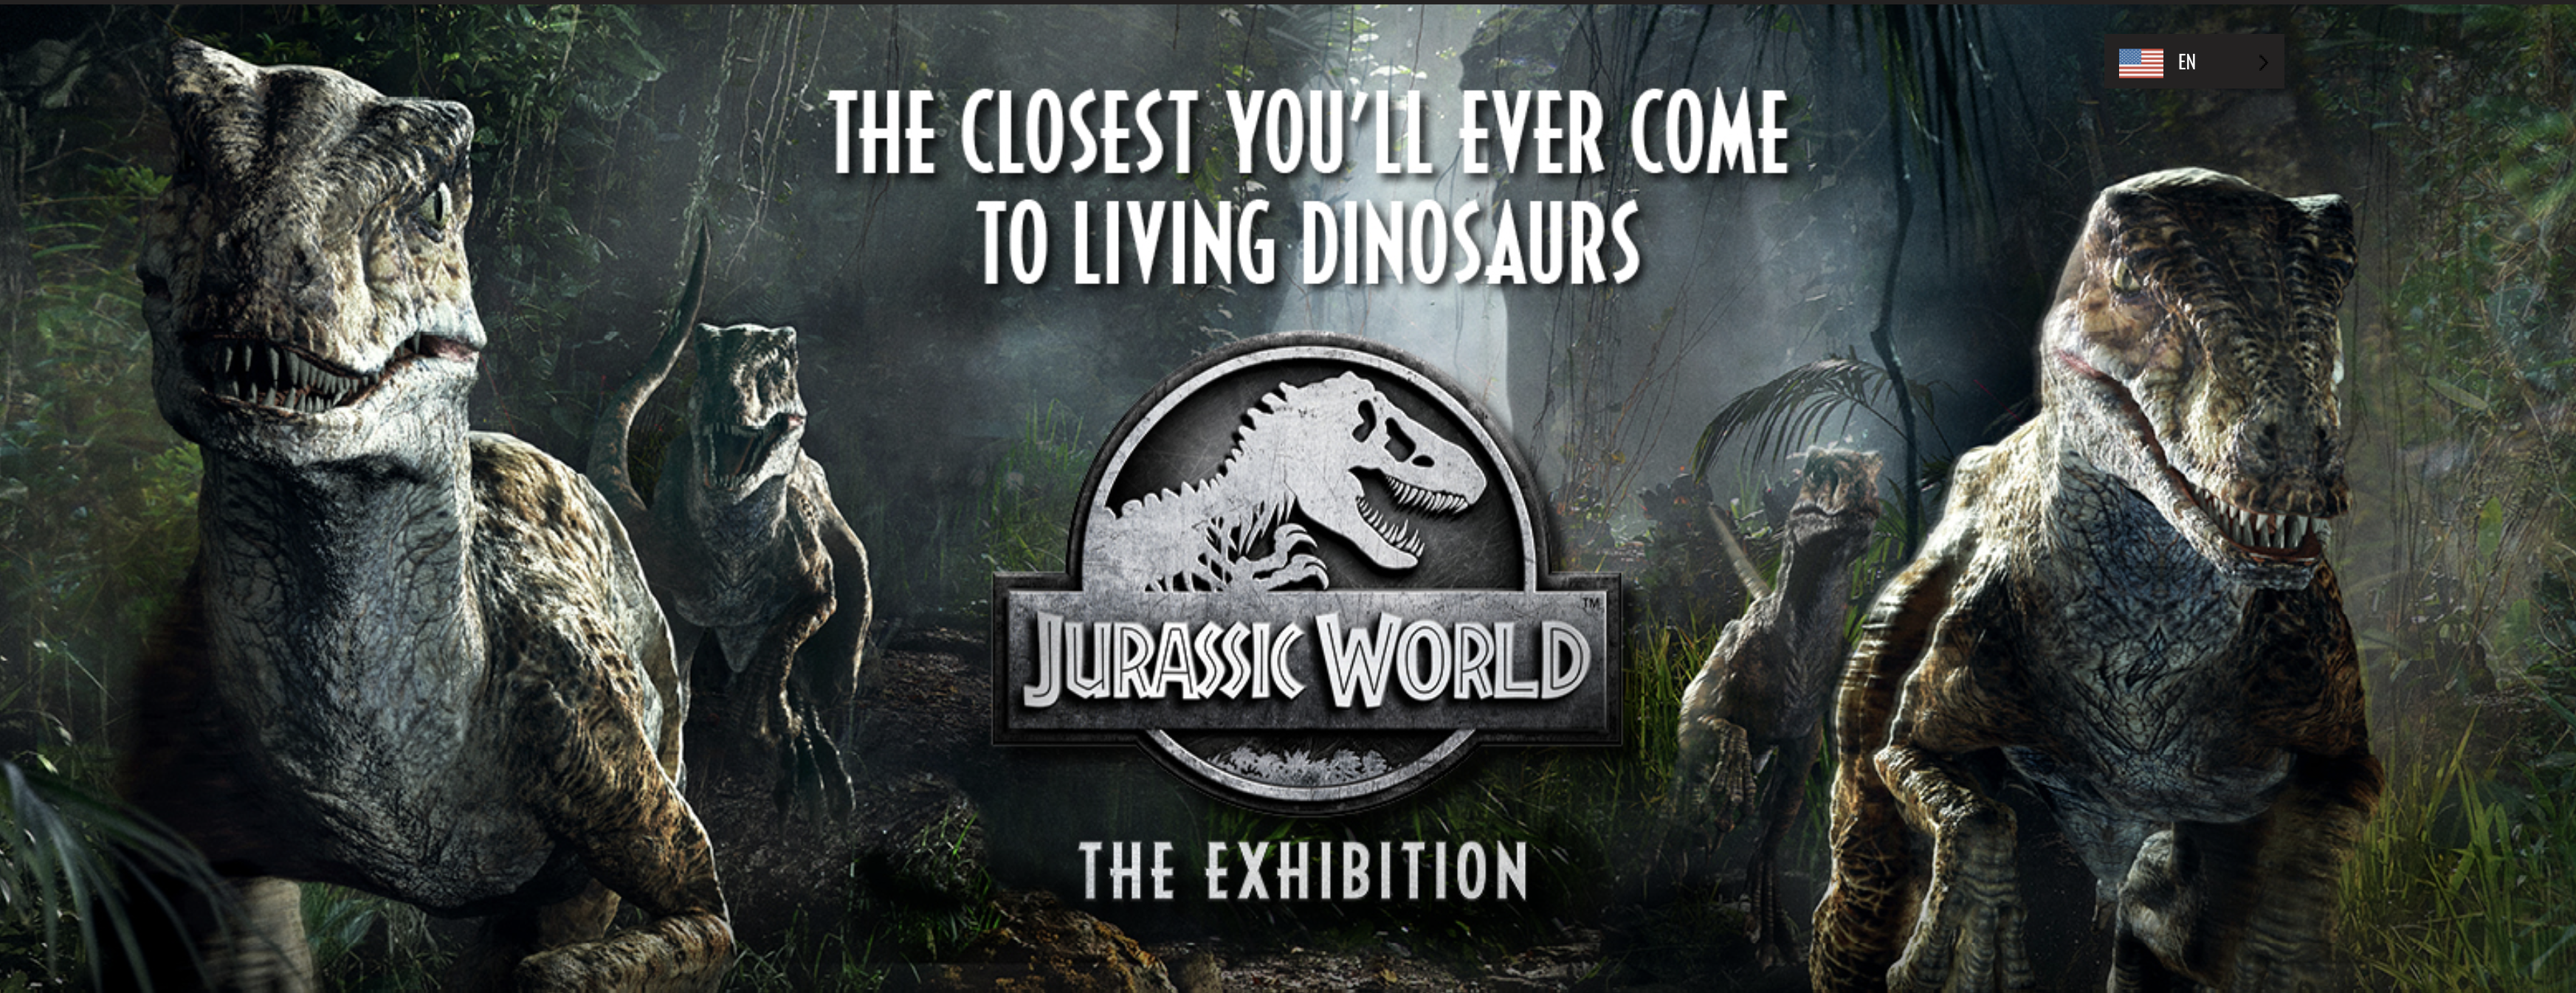 Jurassic World Exhibition